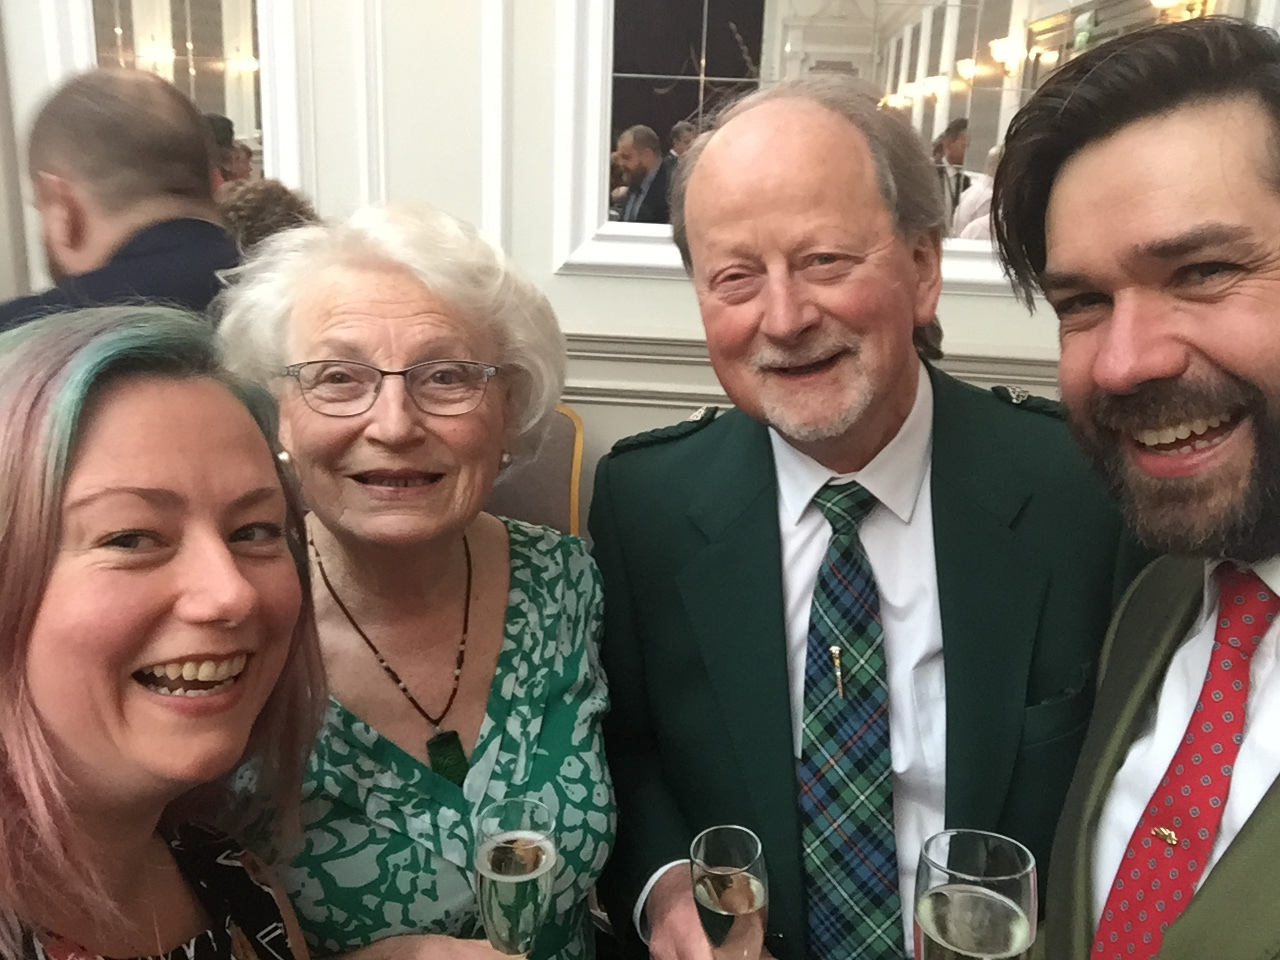 Quick selfie with gemmology royalty - Charlotte & Alan Hodgkinson